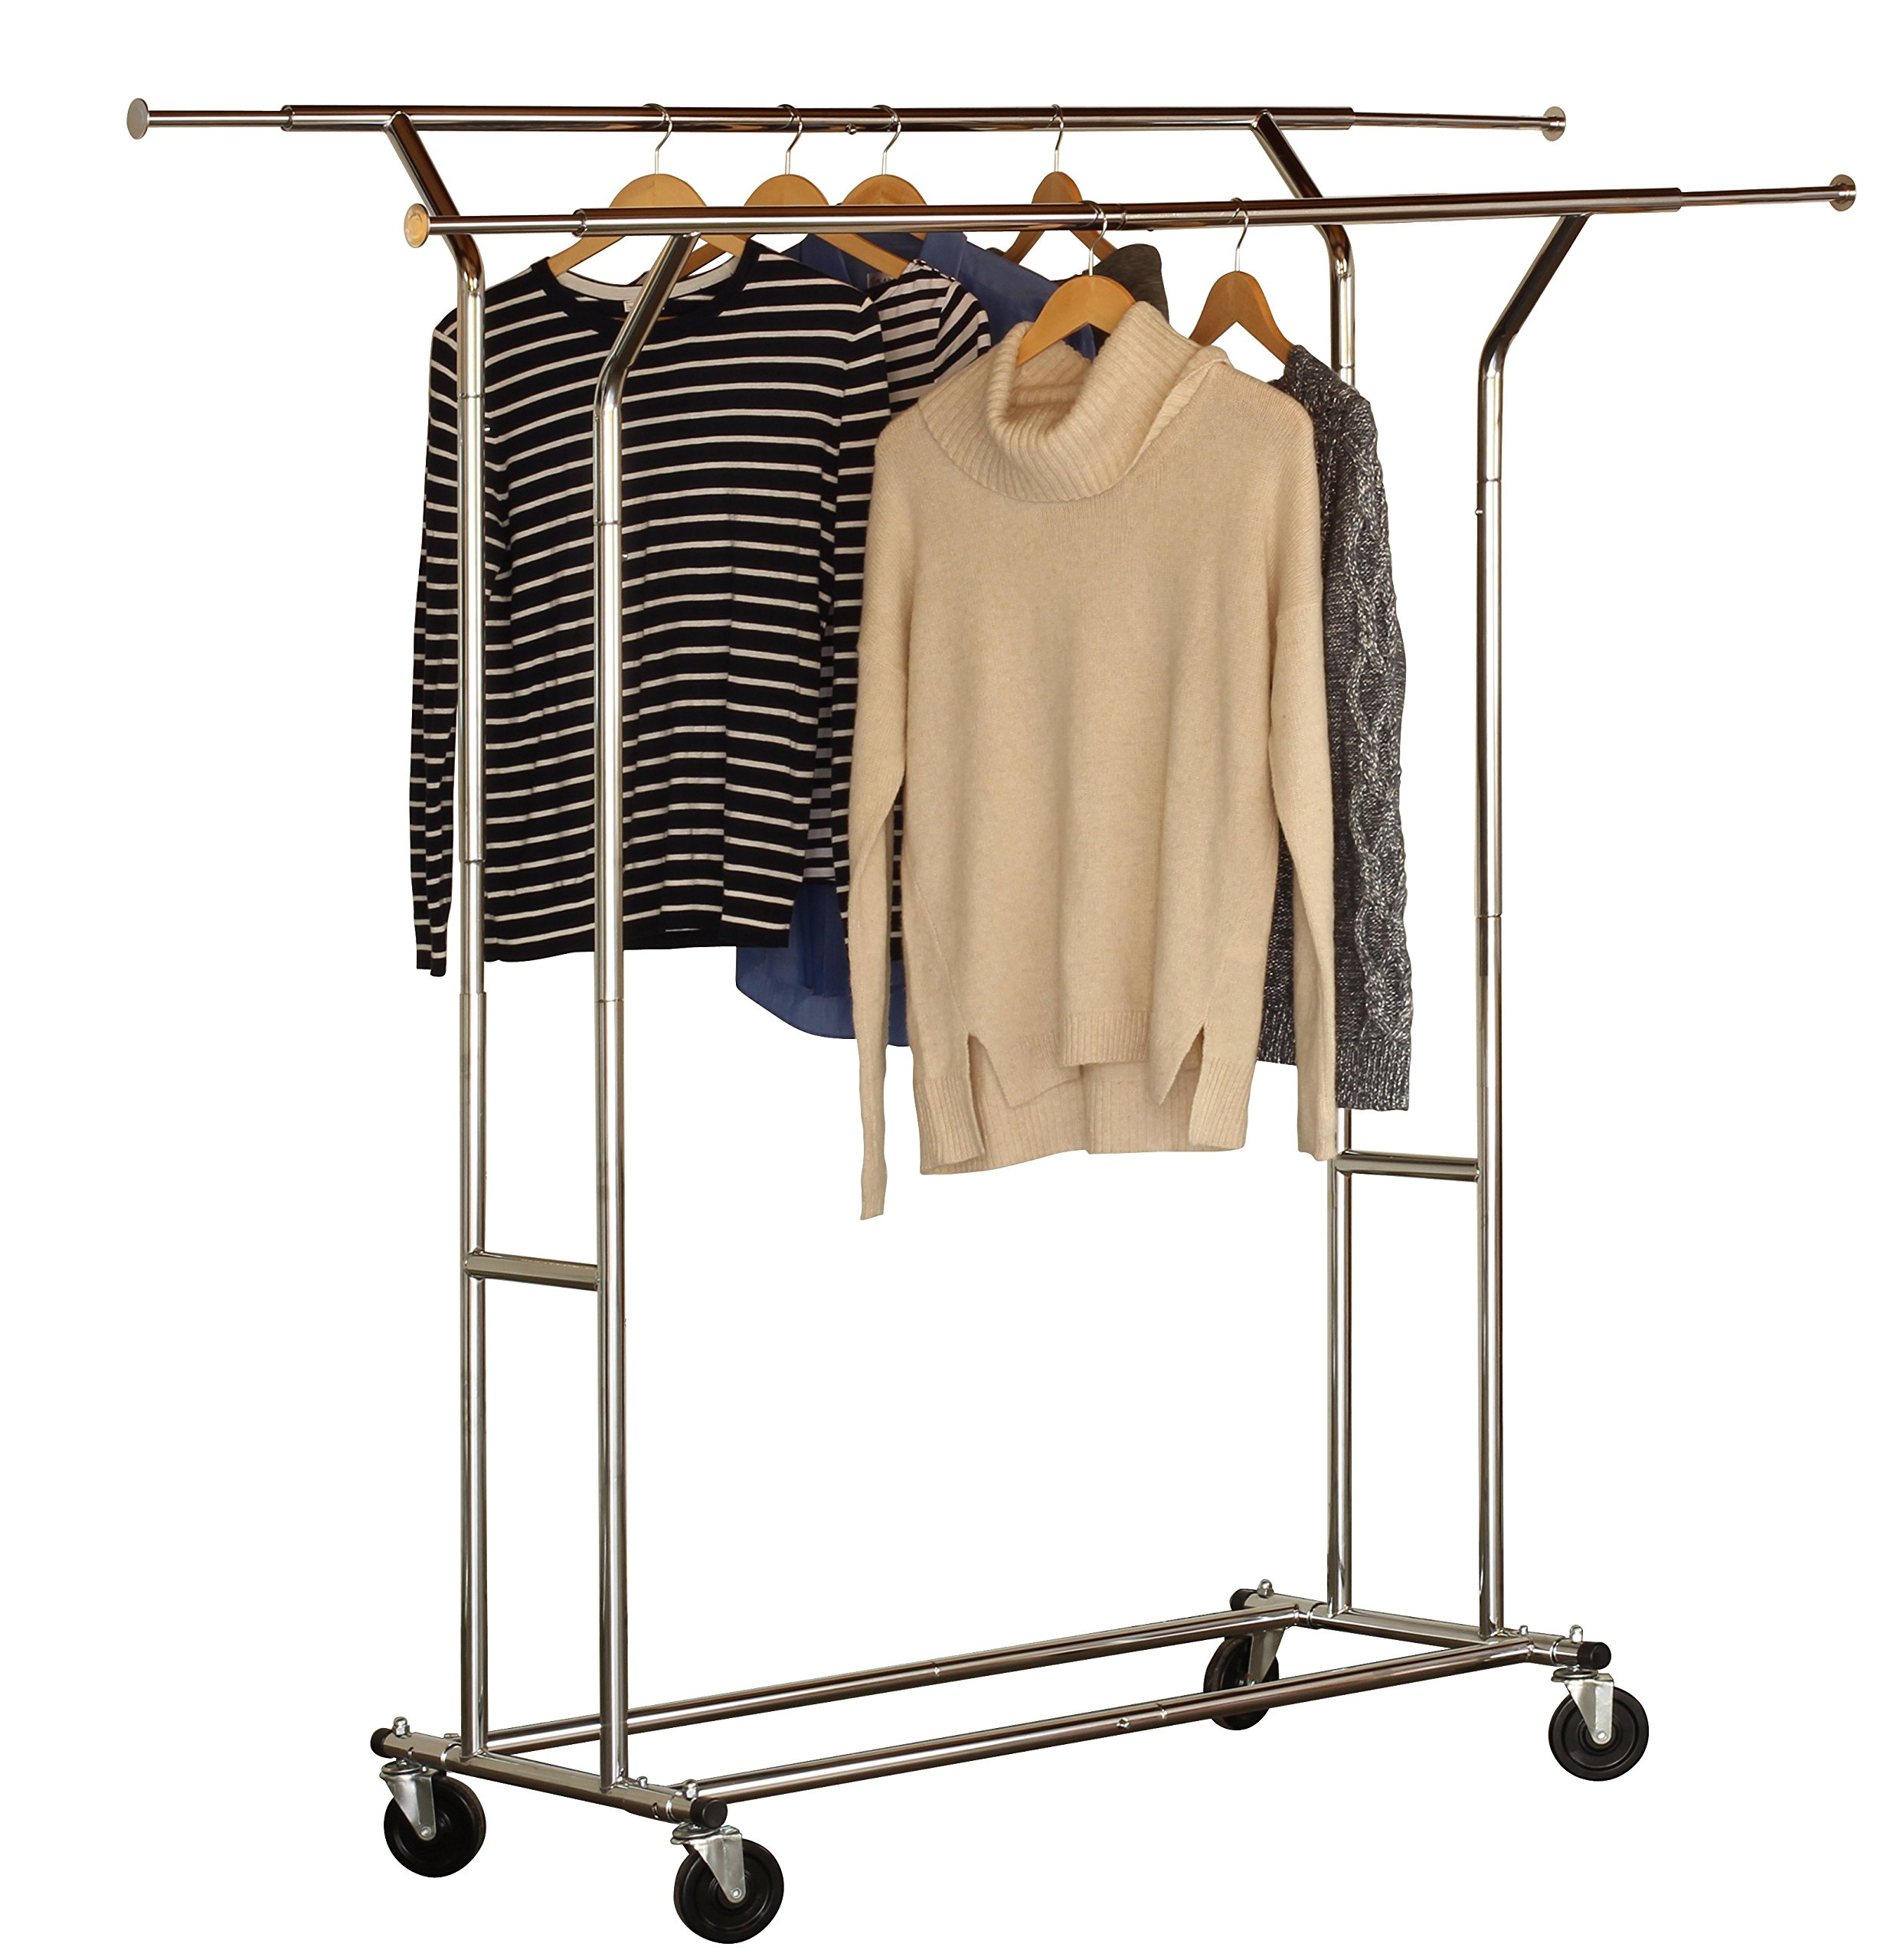 DecoBros Supreme Commercial Grade Double Rail Garment Rolling Rack, Chrome Finish by Deco Brothers